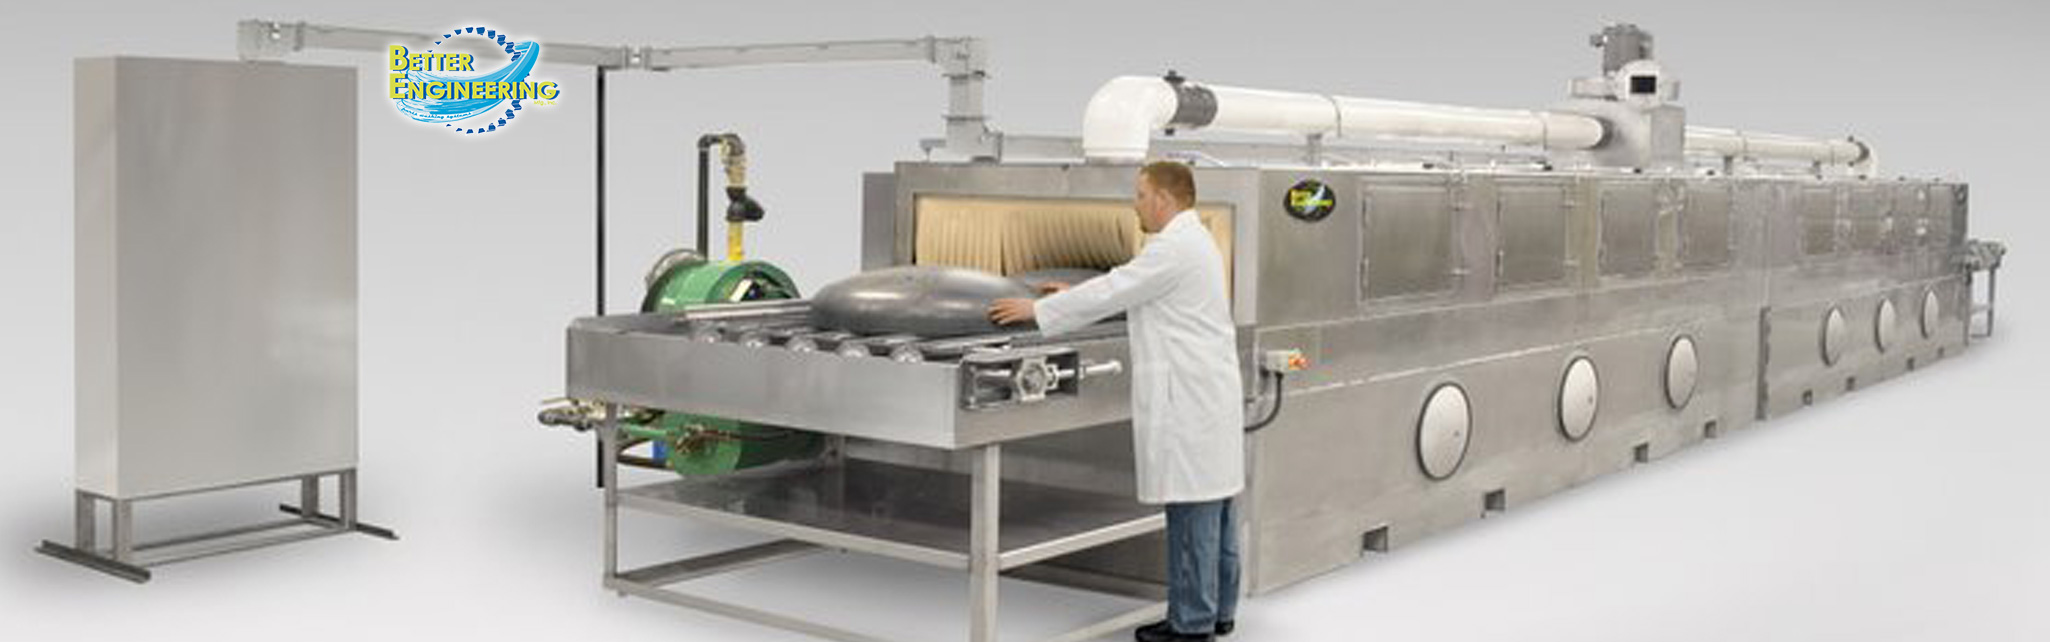 Better Engineering offers a full line of in-line cleaning systems including Turntable Washers, Conveyor Washers, Immersion-Ultrasonic Washers, Tumbling Washers, Drum Washers, RTO Washers, and Custom Washers